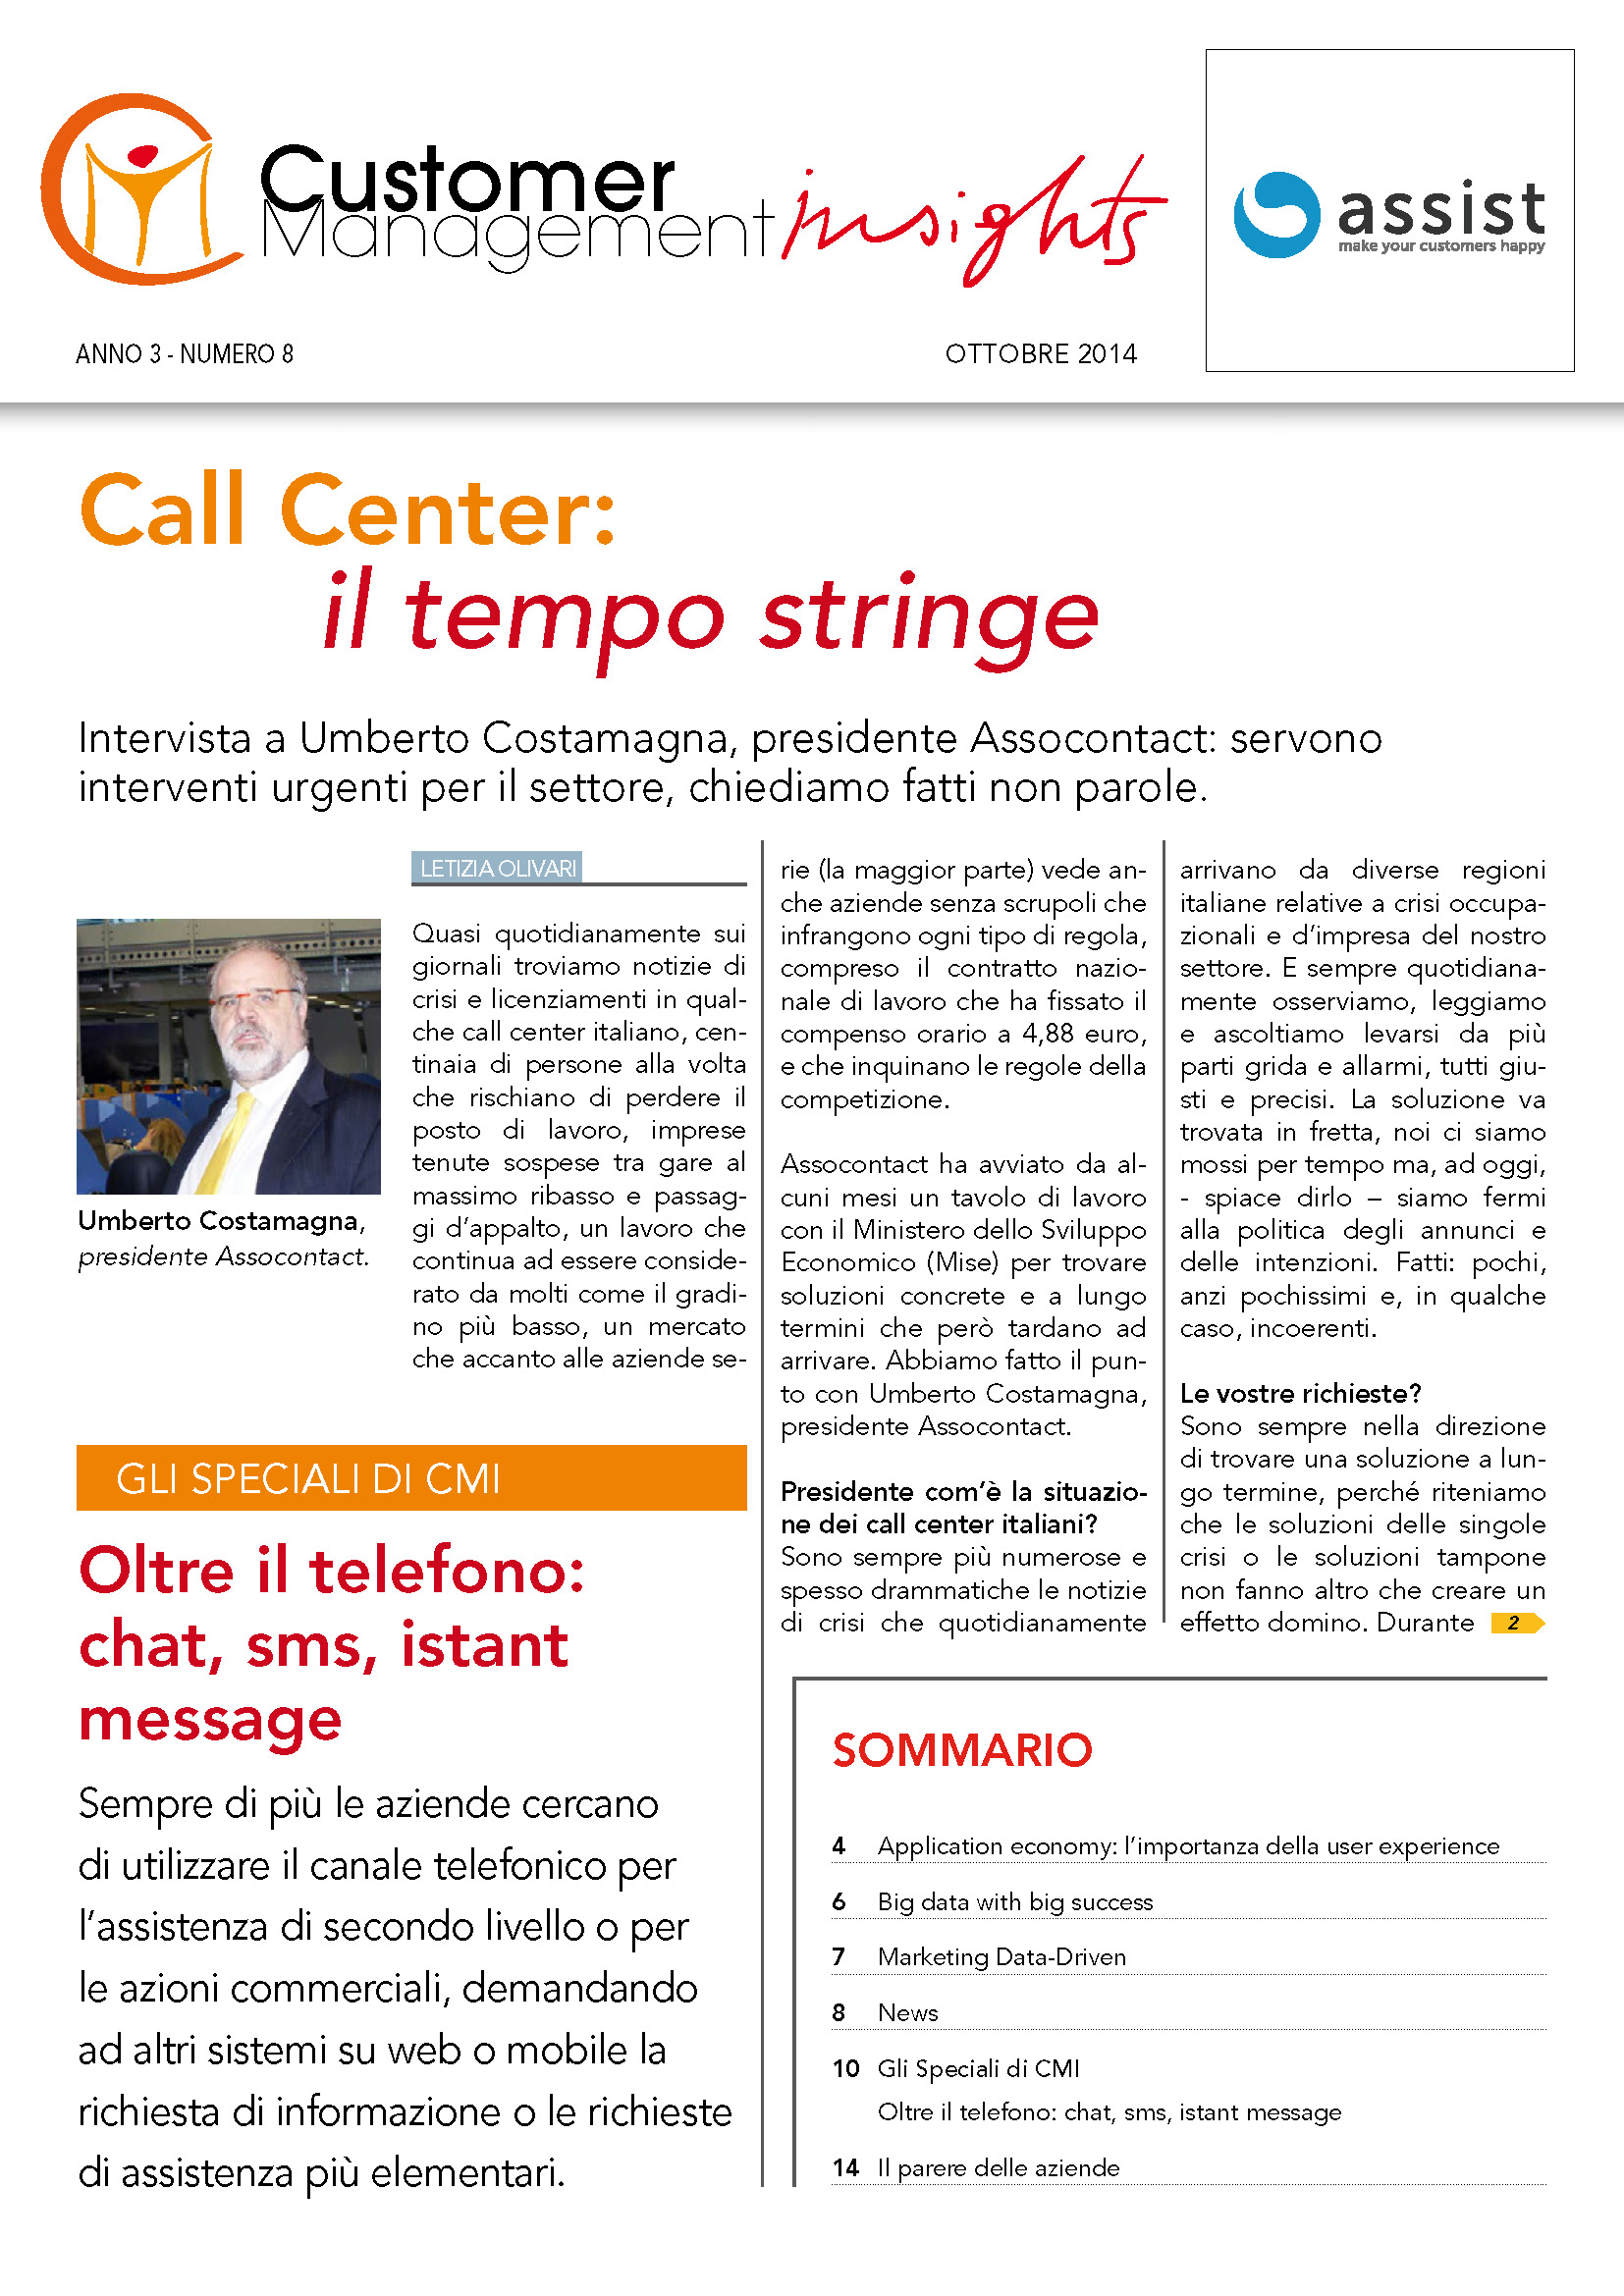 Ottobre 2014  – Oltre il telefono: chat, sms, istant message